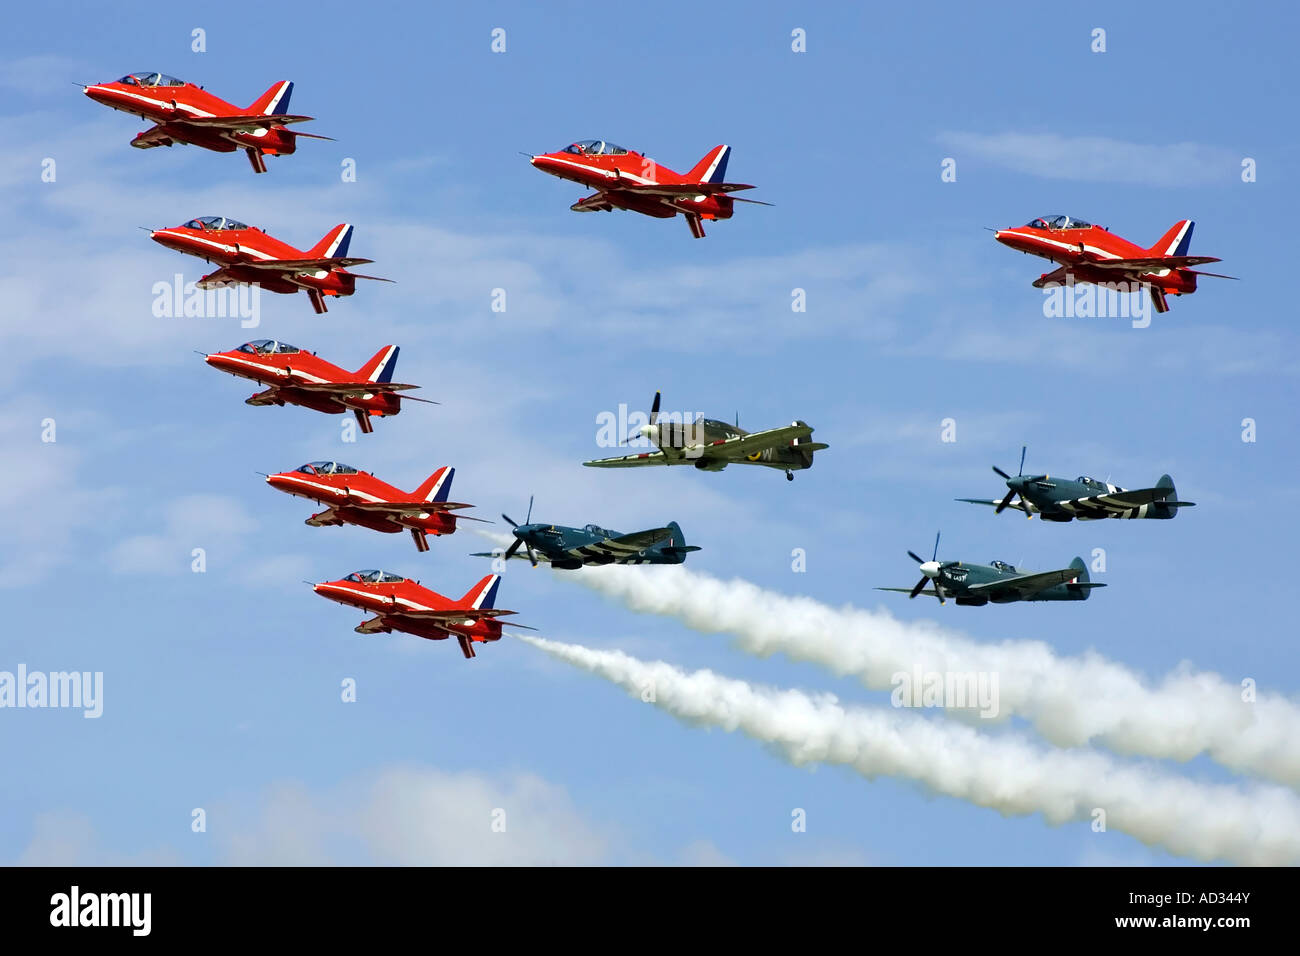 The RAF Red Arrows formation aerobatic team flying in formation with a WW2 RAF Hurricane and 3 RAF Spitfire fighters - Stock Image